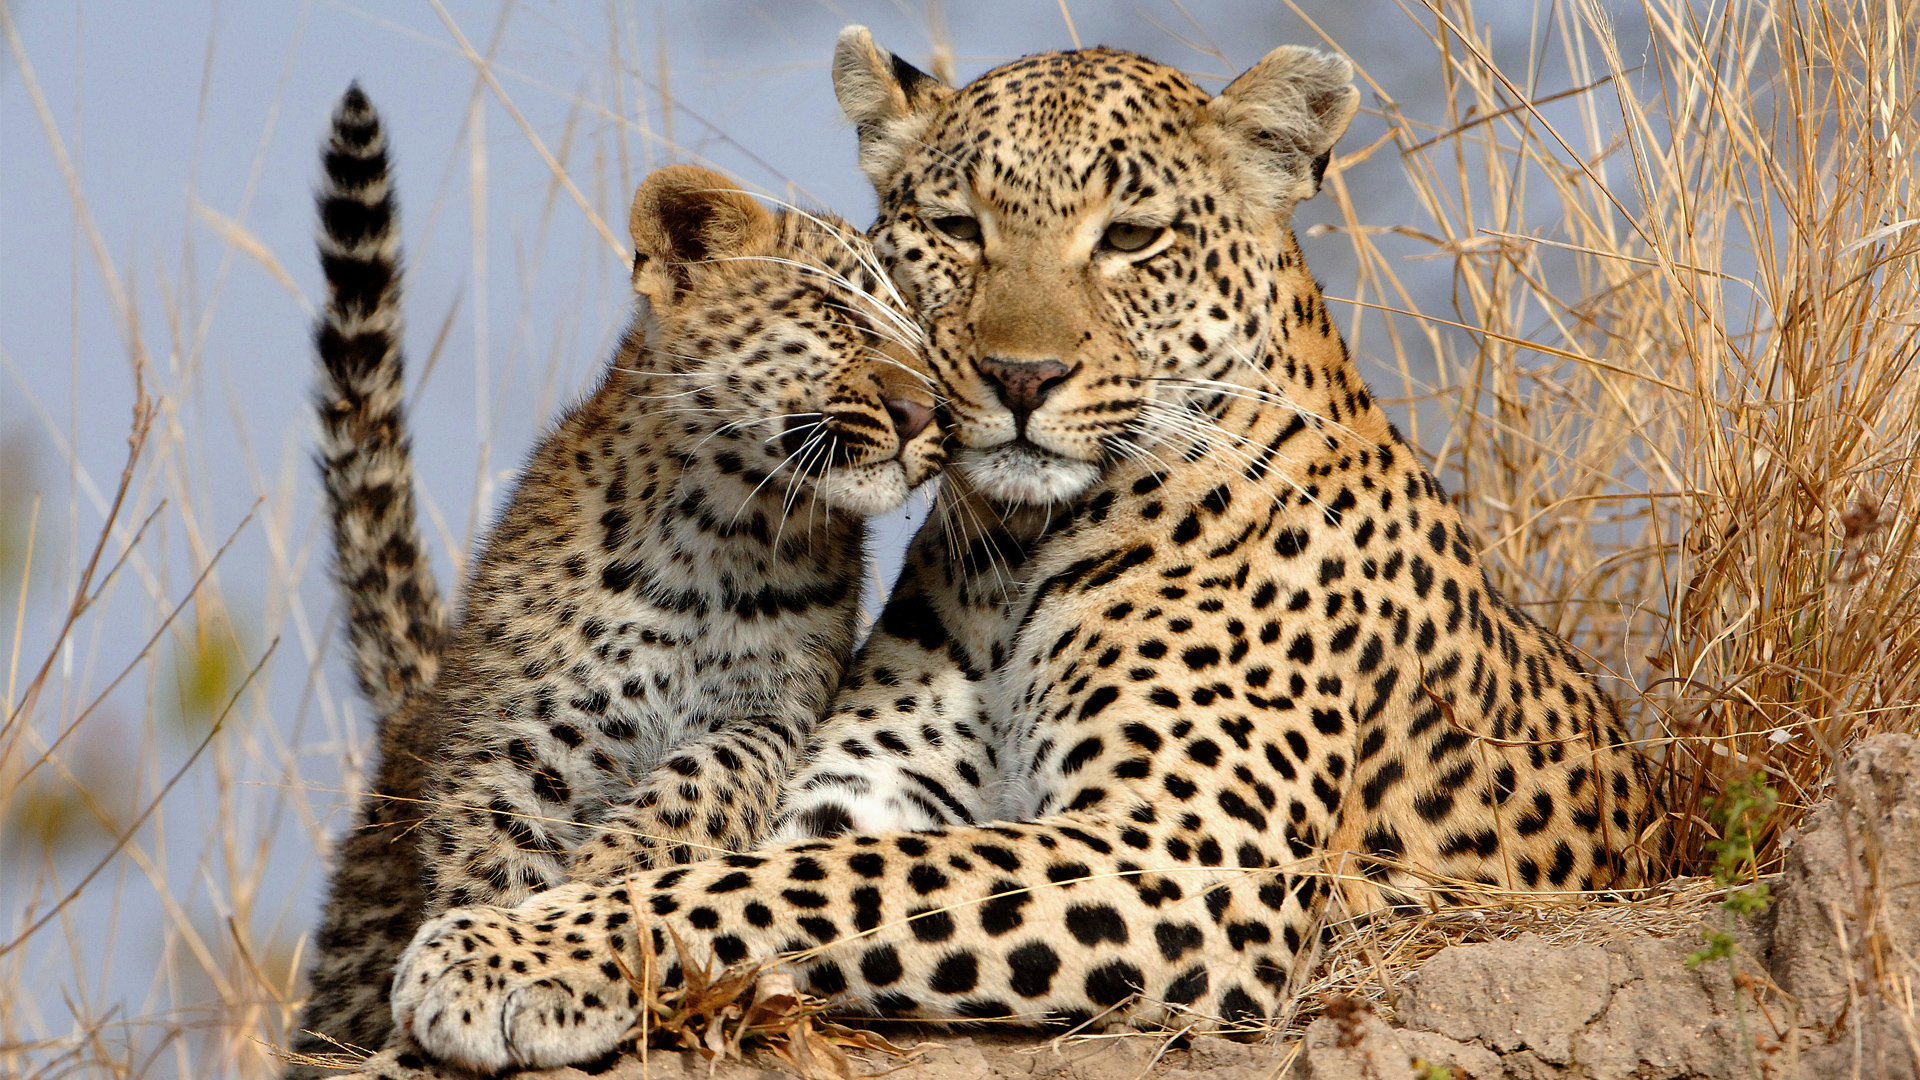 leopard-and-cub-showing-affection-care-of-the-wildlife-deoadventure